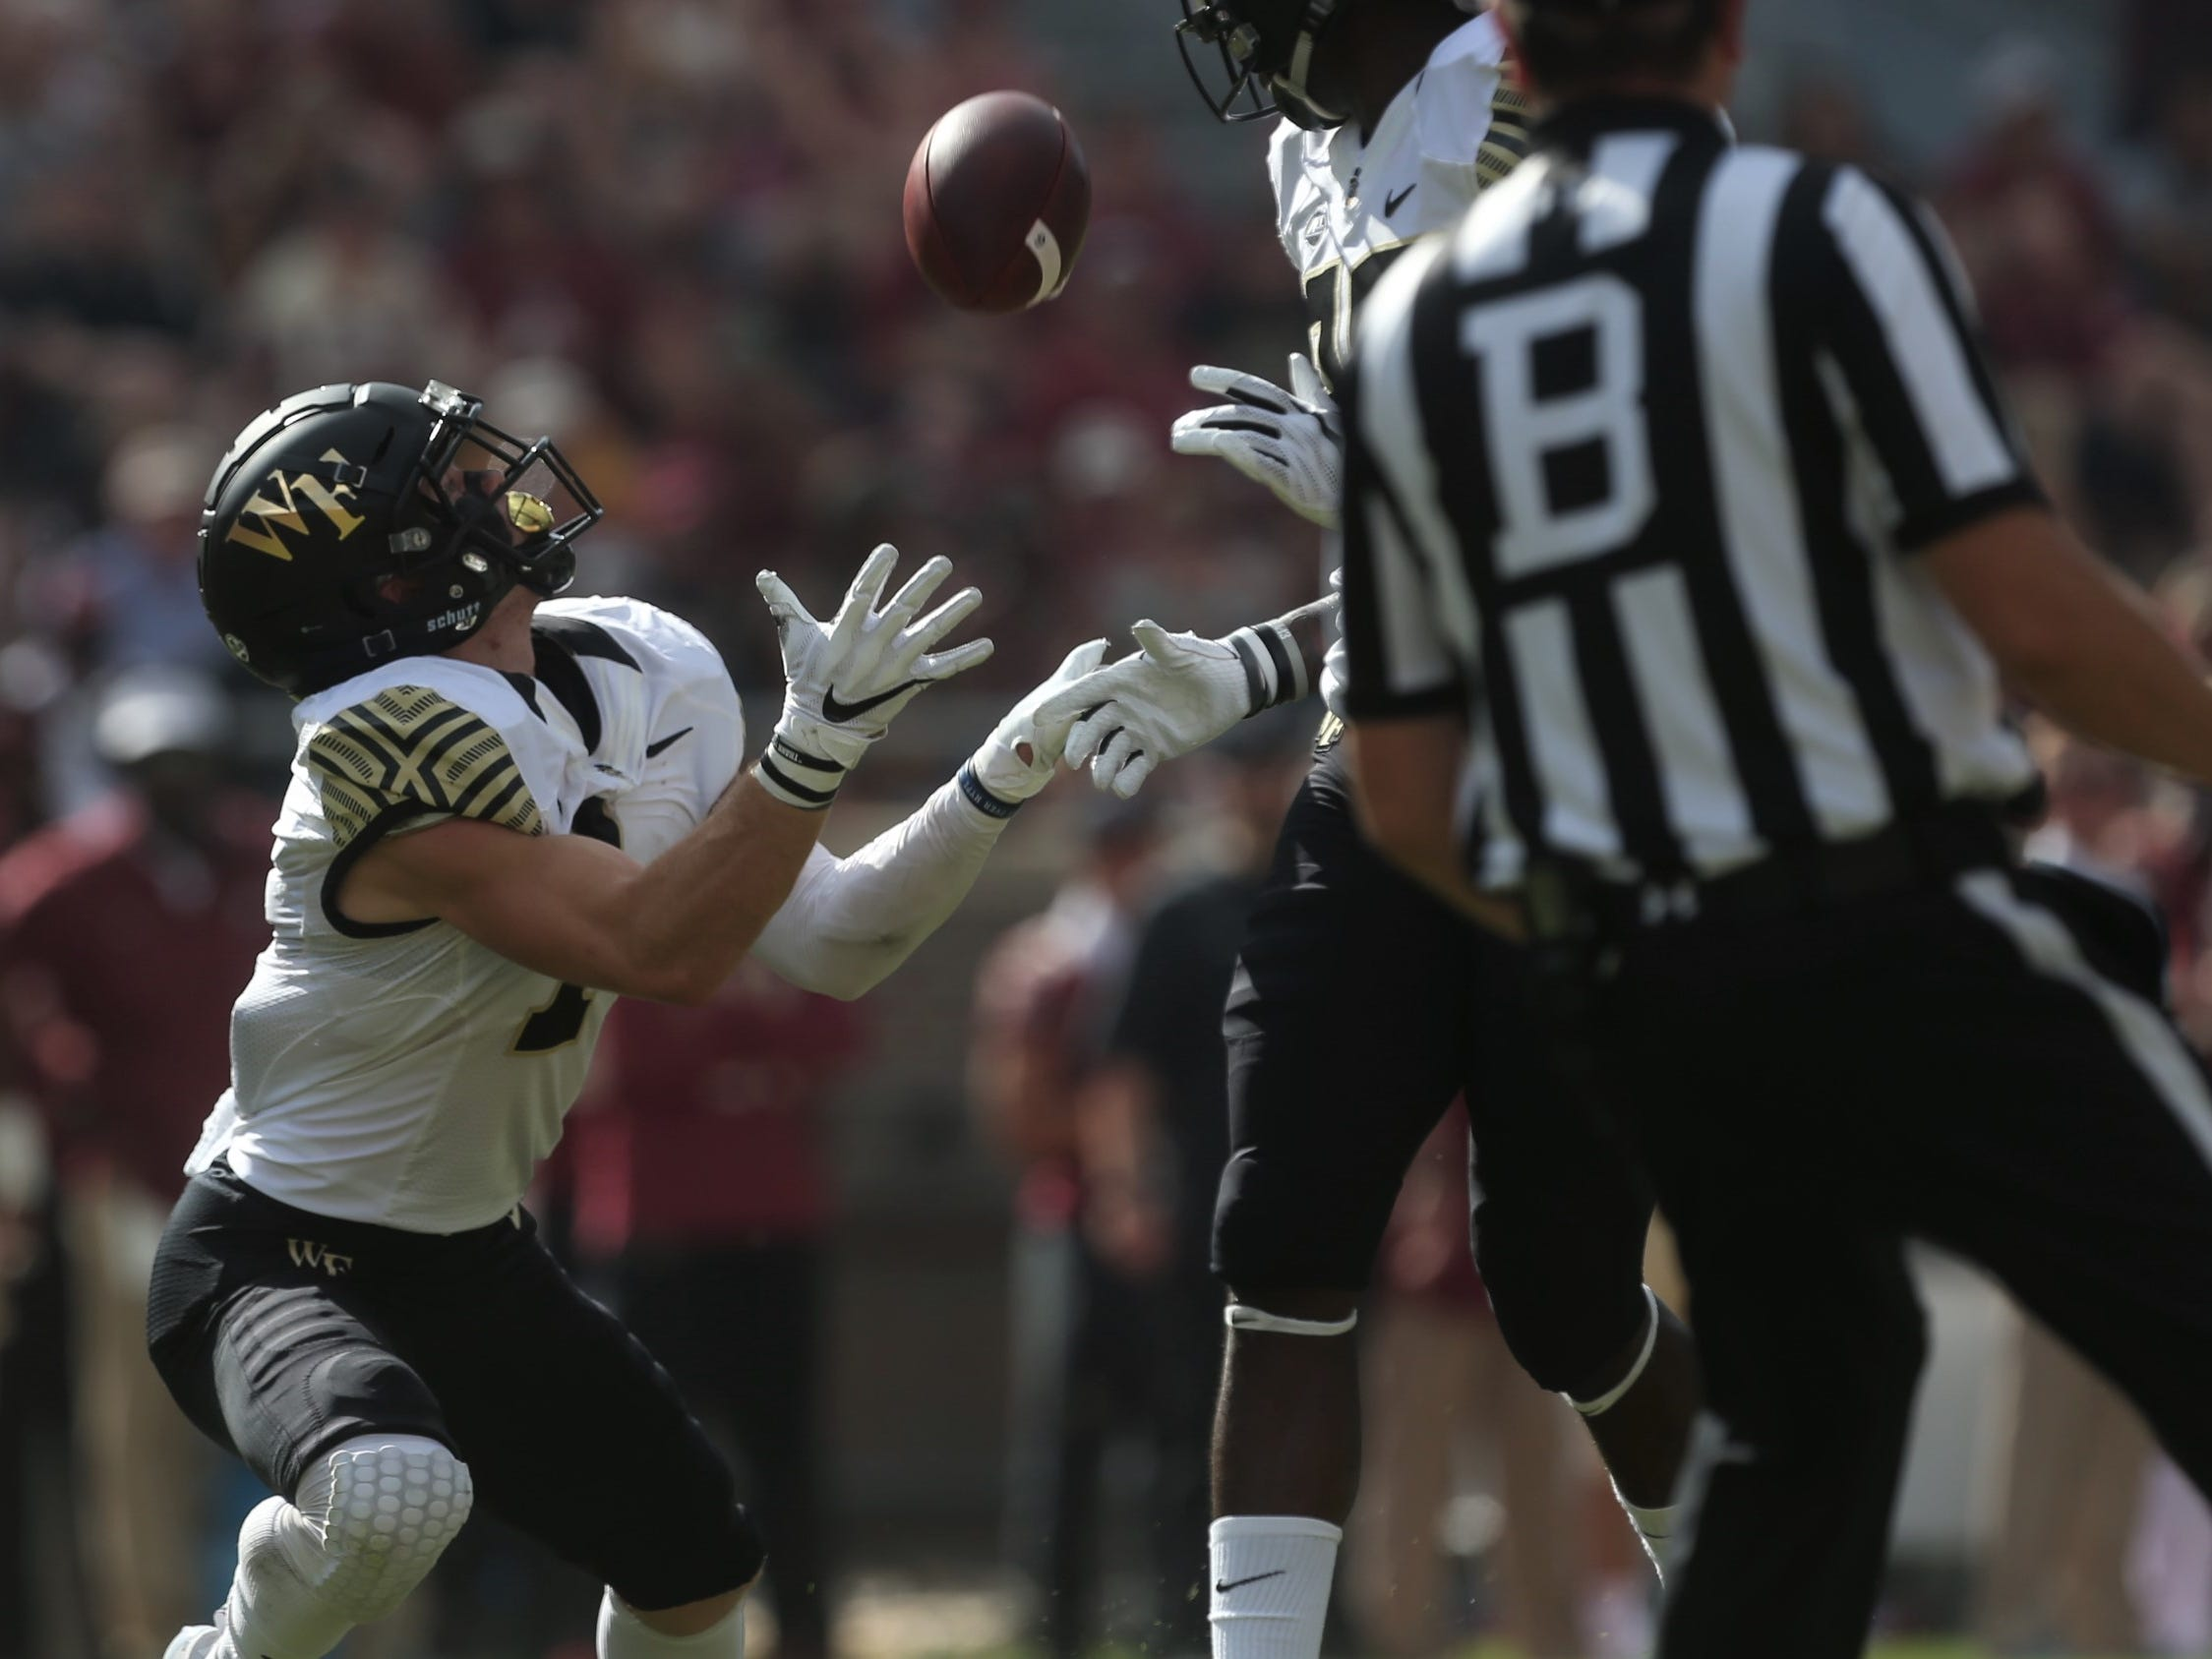 Wake Forest's Alex Bachman catches a punt during a game against Florida State at Doak Campbell Stadium on Saturday, Oct. 20, 2018.